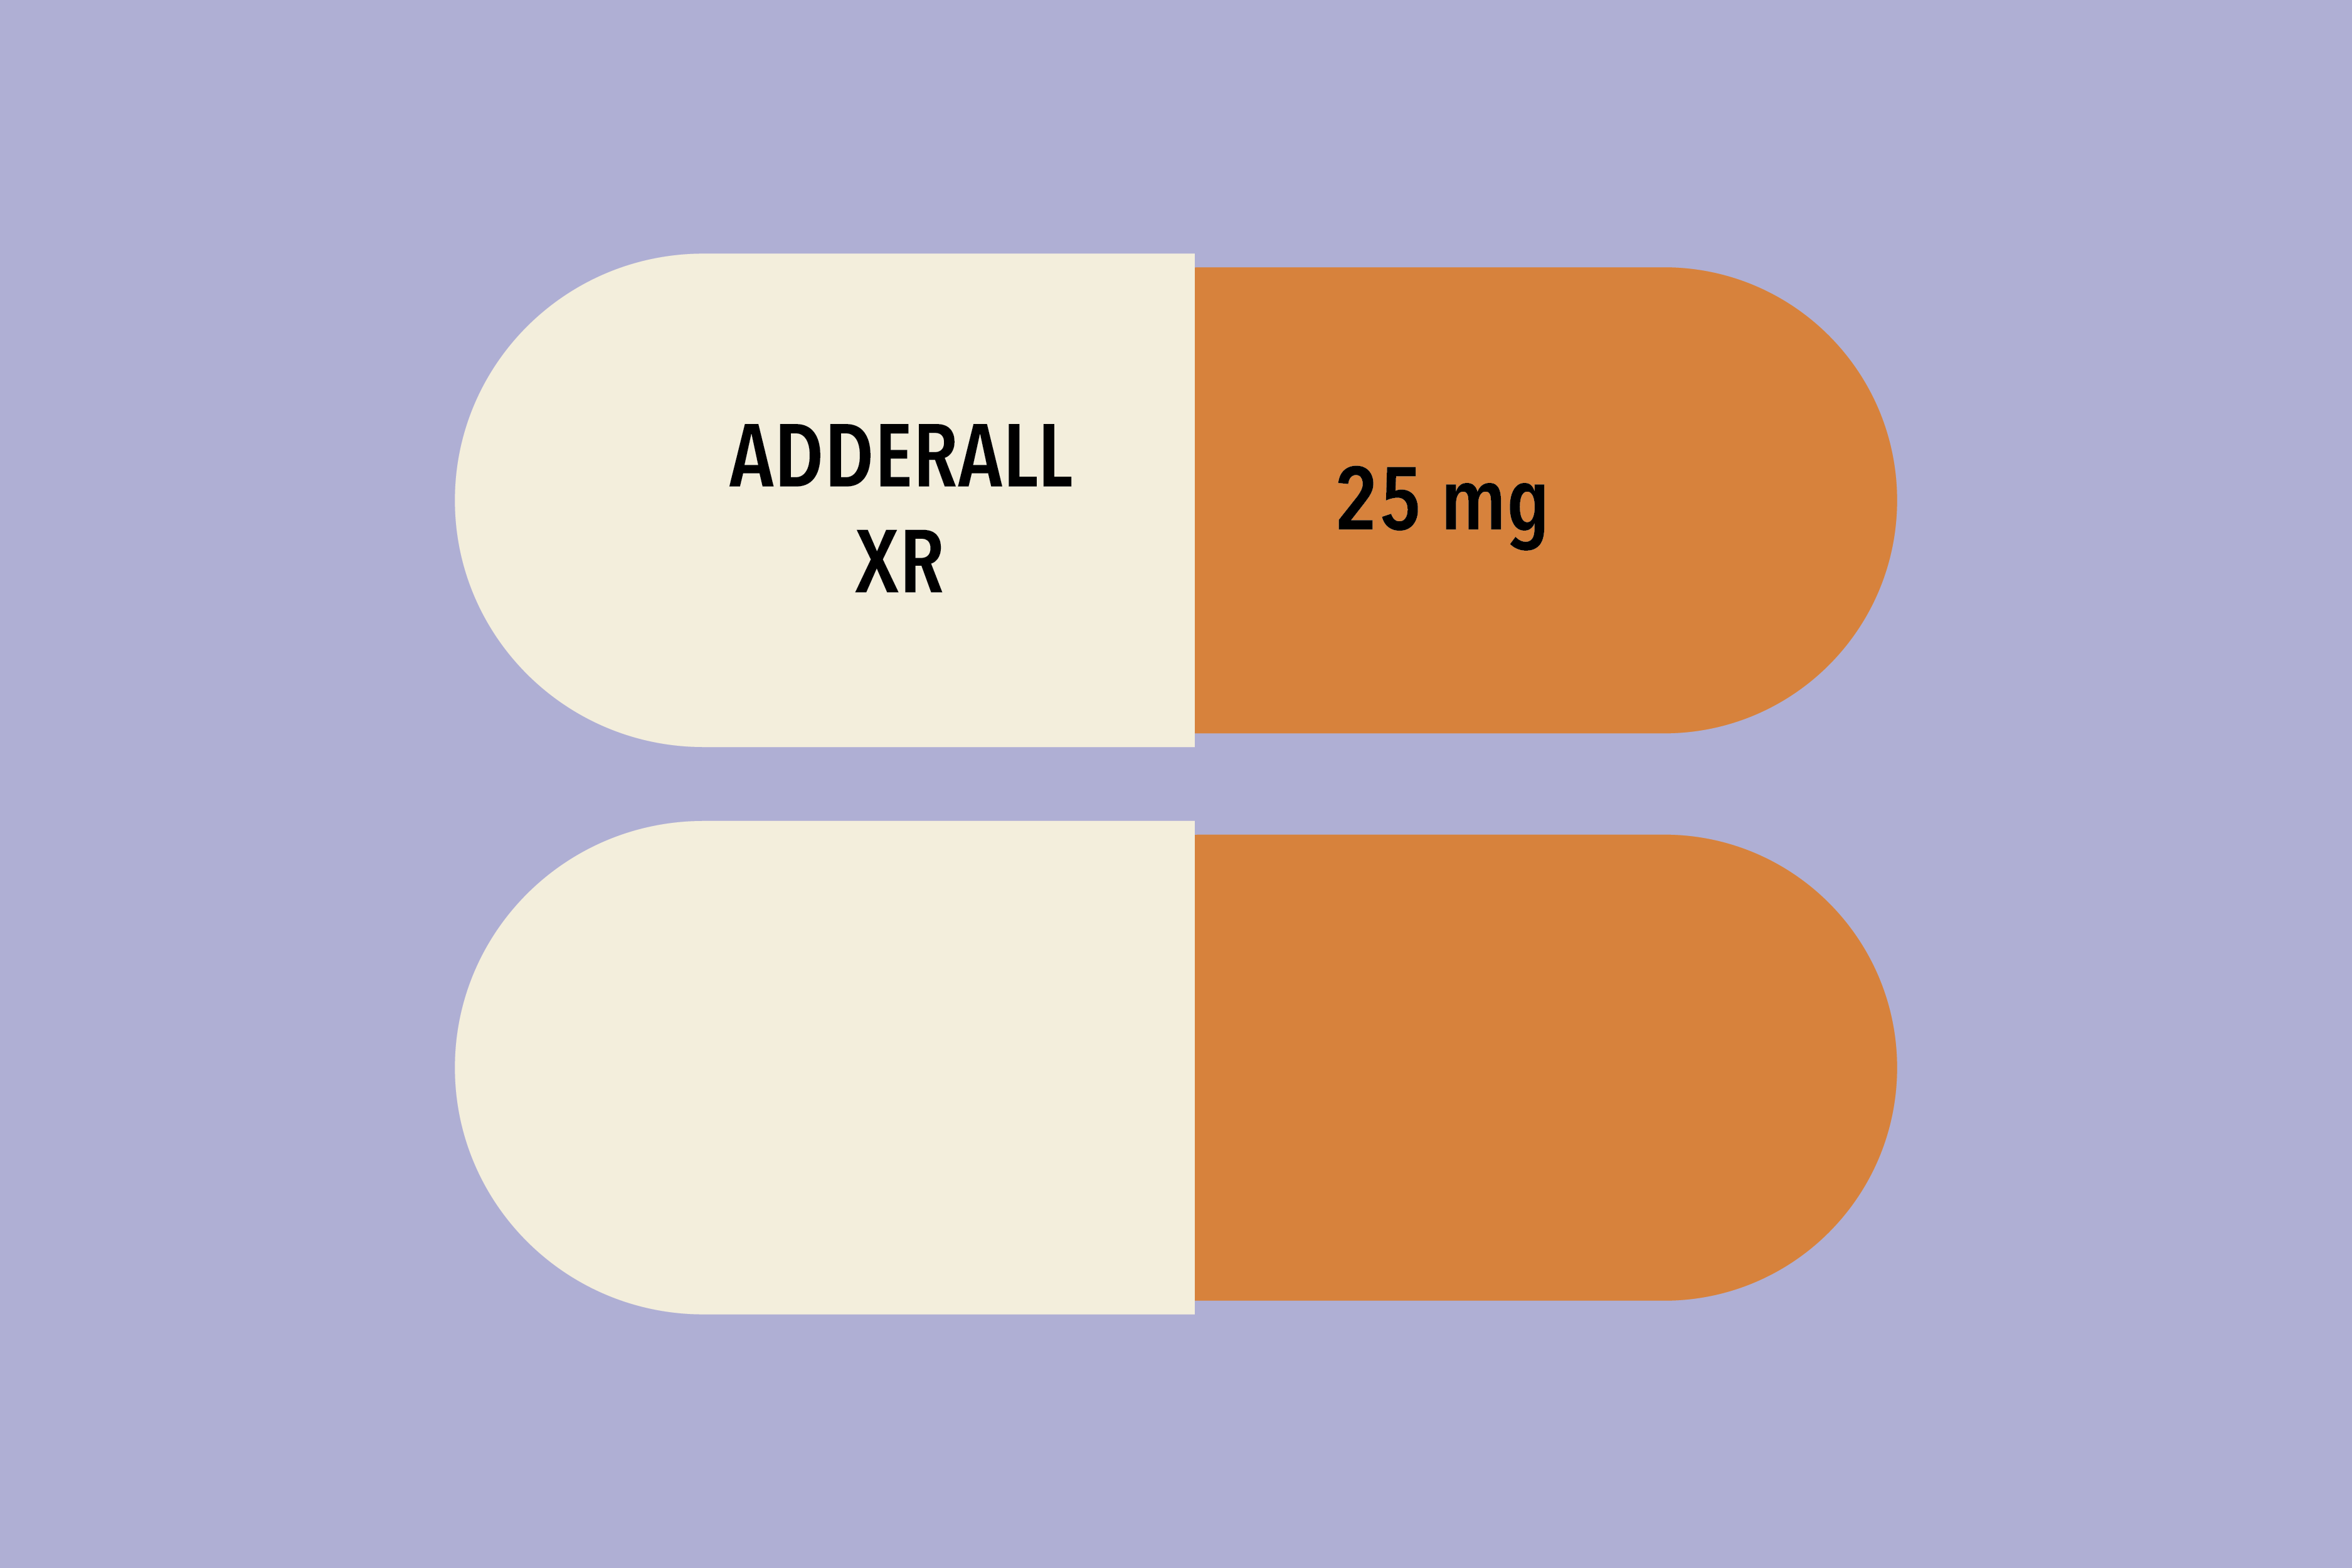 Can Attention Deficit Drugs Normalize >> Students Discuss Adderall Use For Academic Purposes The Aggie